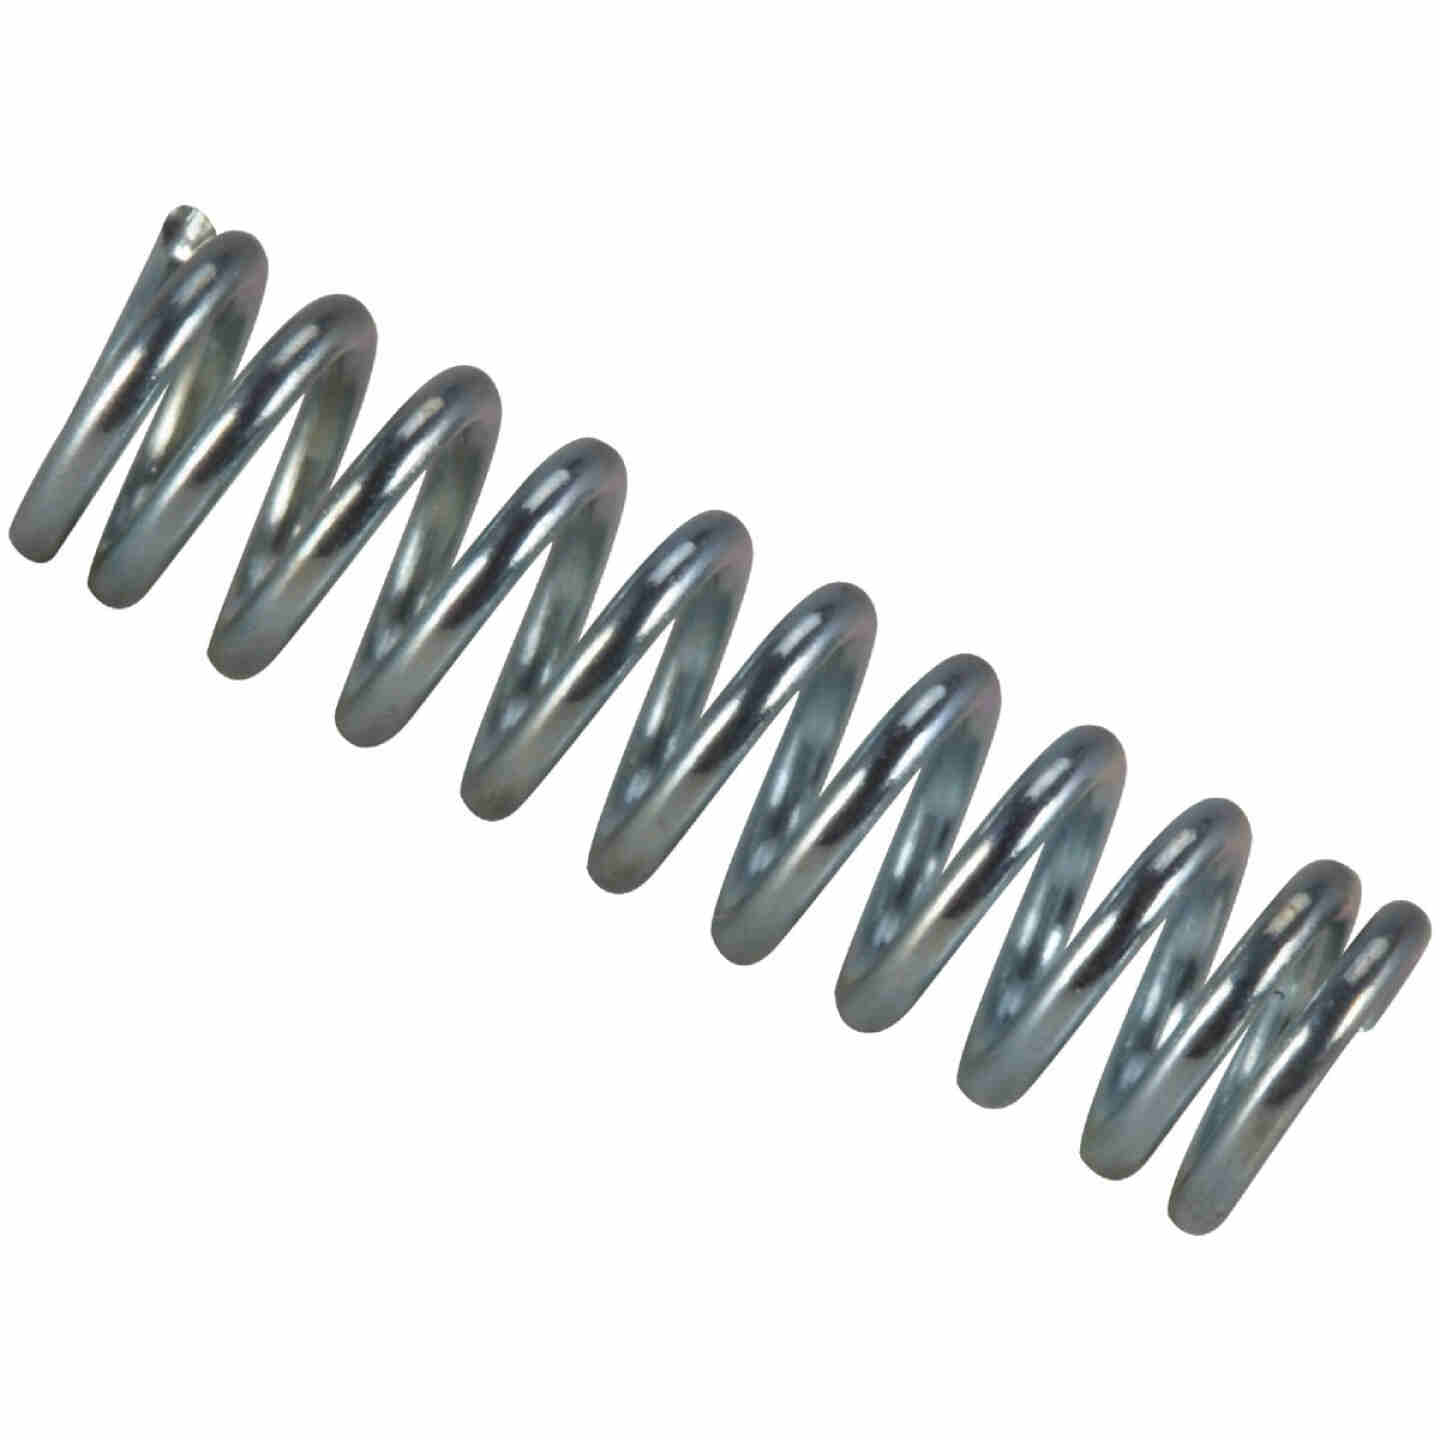 Century Spring 3 In. x 7/8 In. Compression Spring (2 Count) Image 1